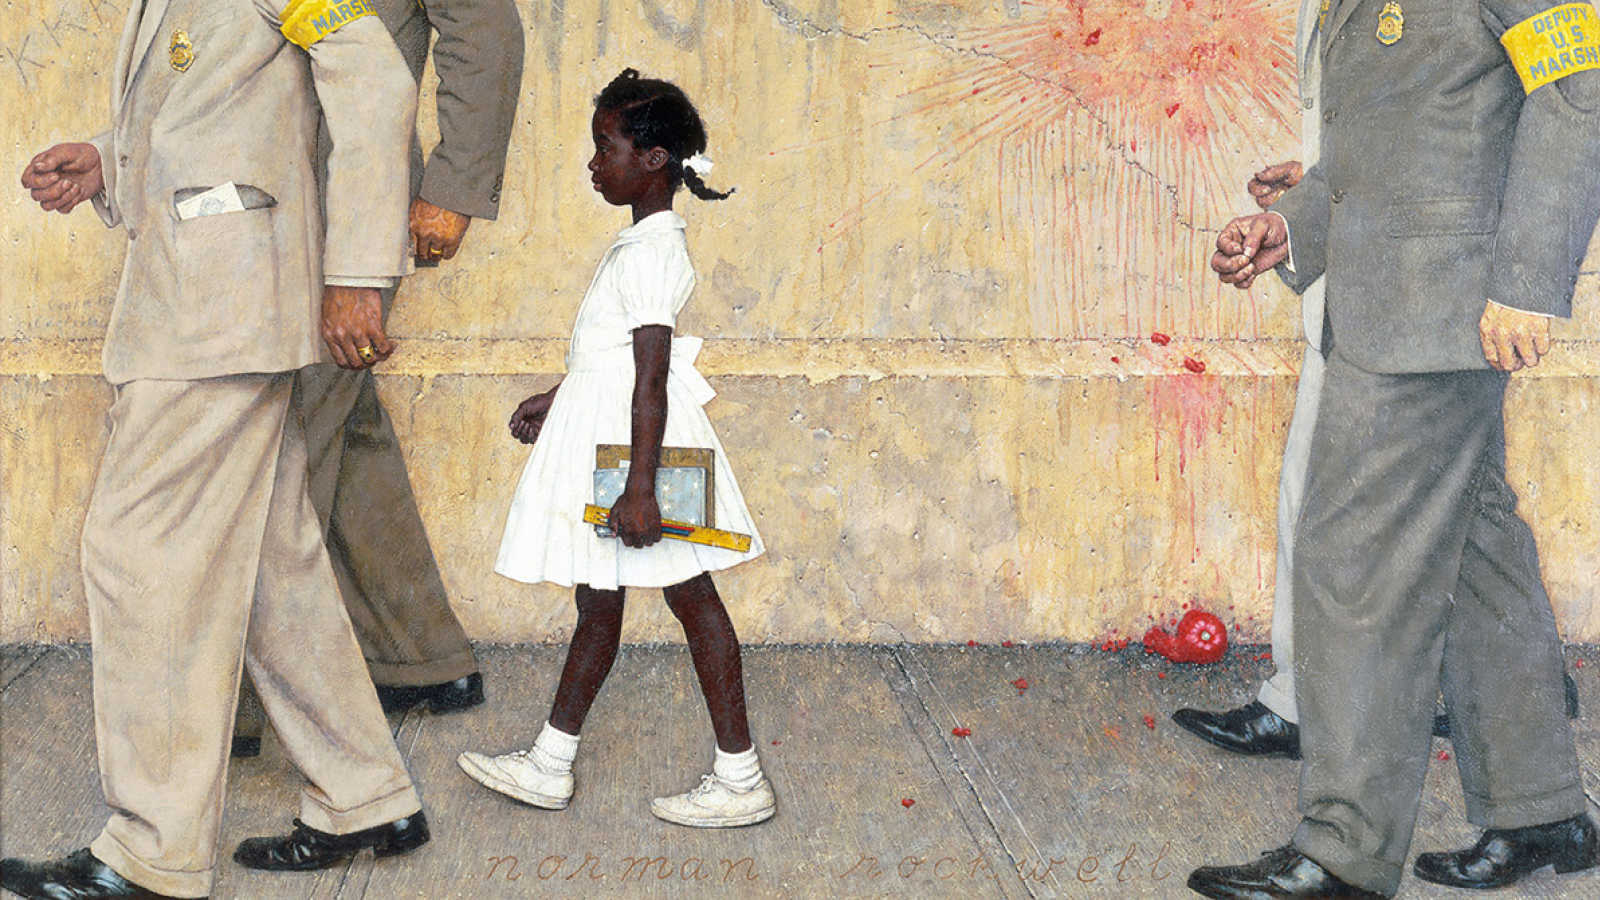 """Norman Rockwell's painting """"The Problem We All Live With,"""" image from the website of the Norman Rockwell Museum."""